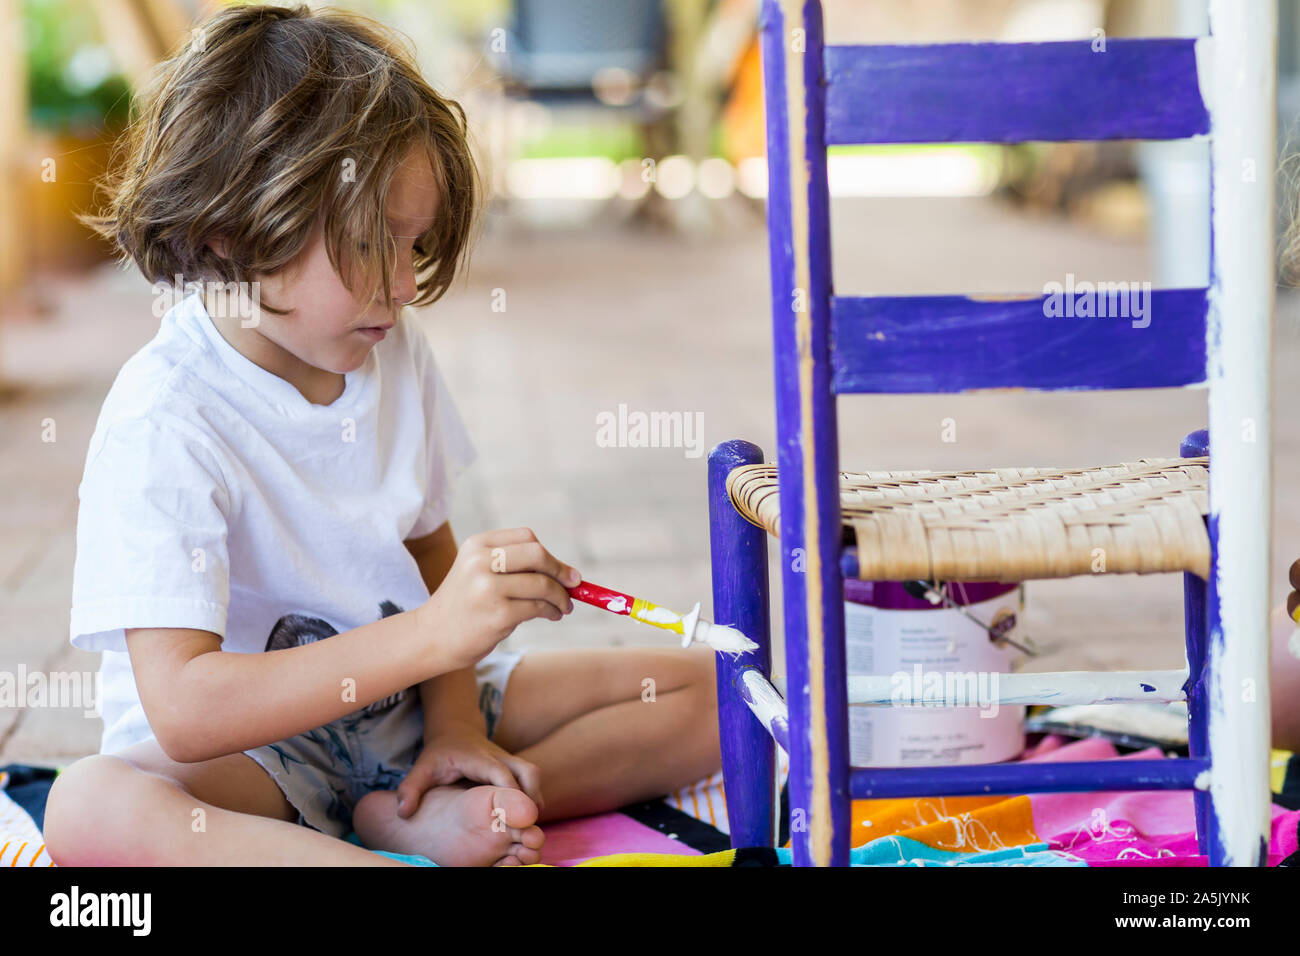 5 year old boy painting children's chair on porch with his sister Stock Photo